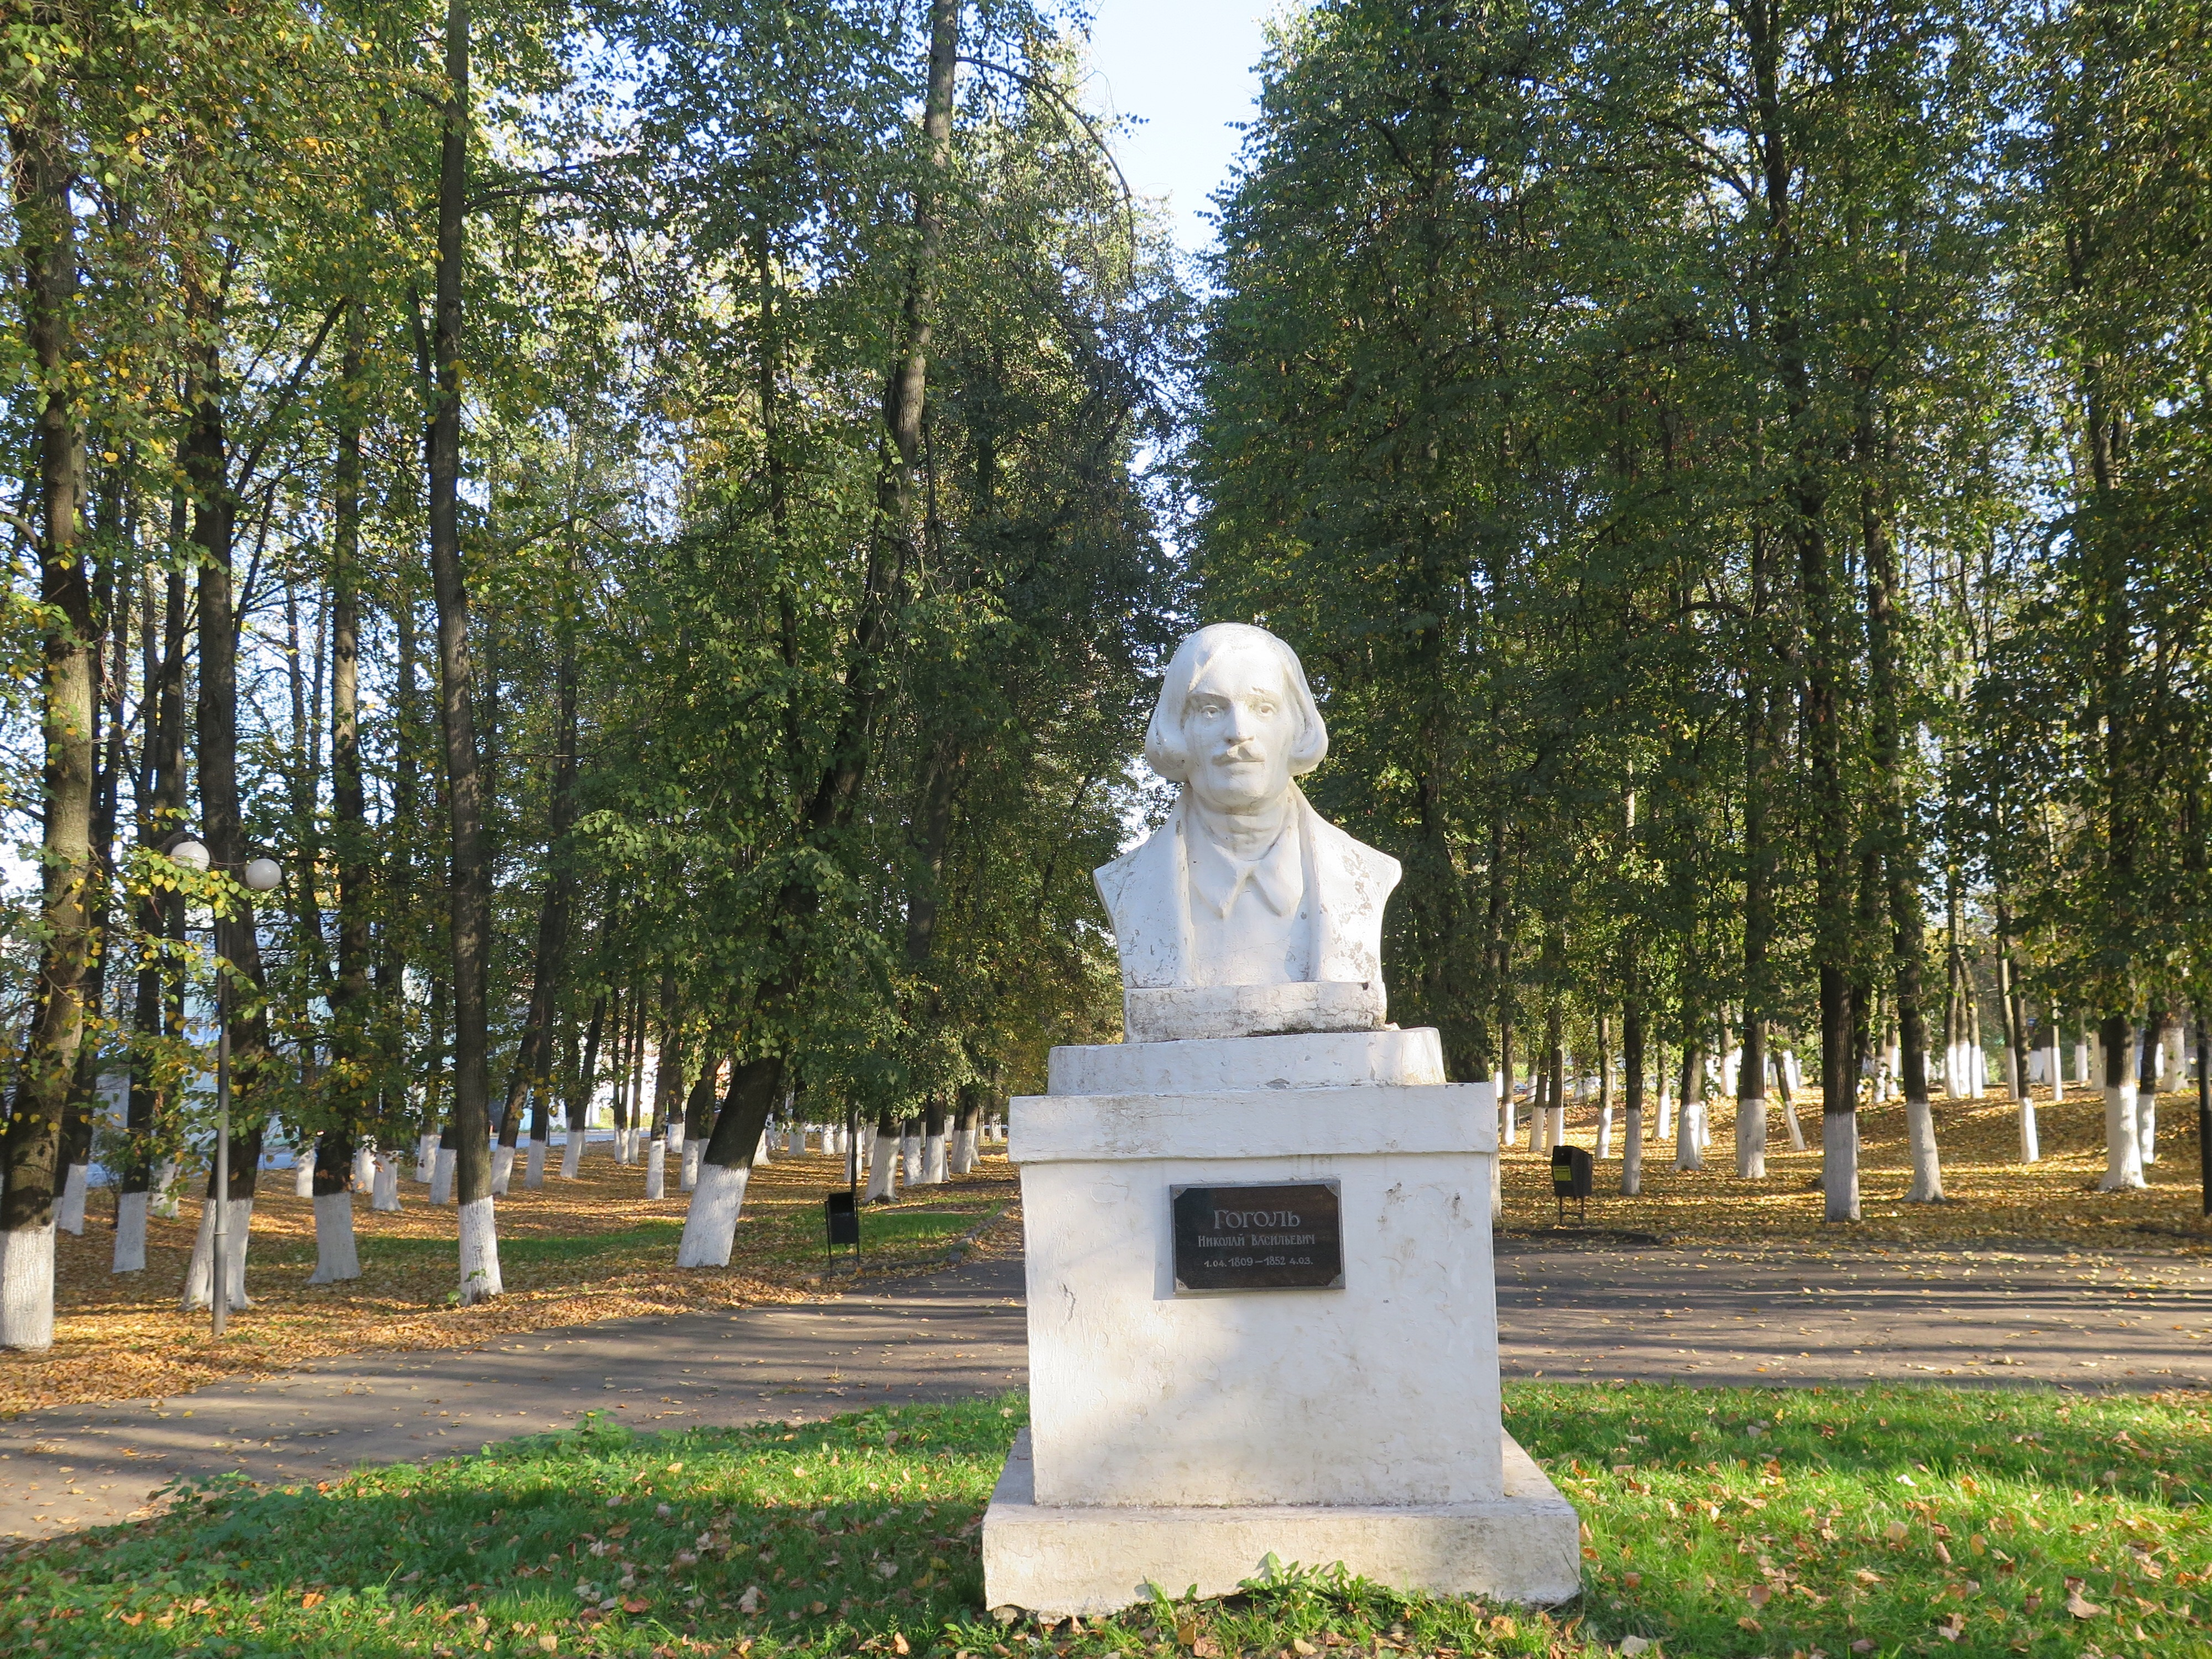 In the park was a bust of the Soviet writer Gorky.